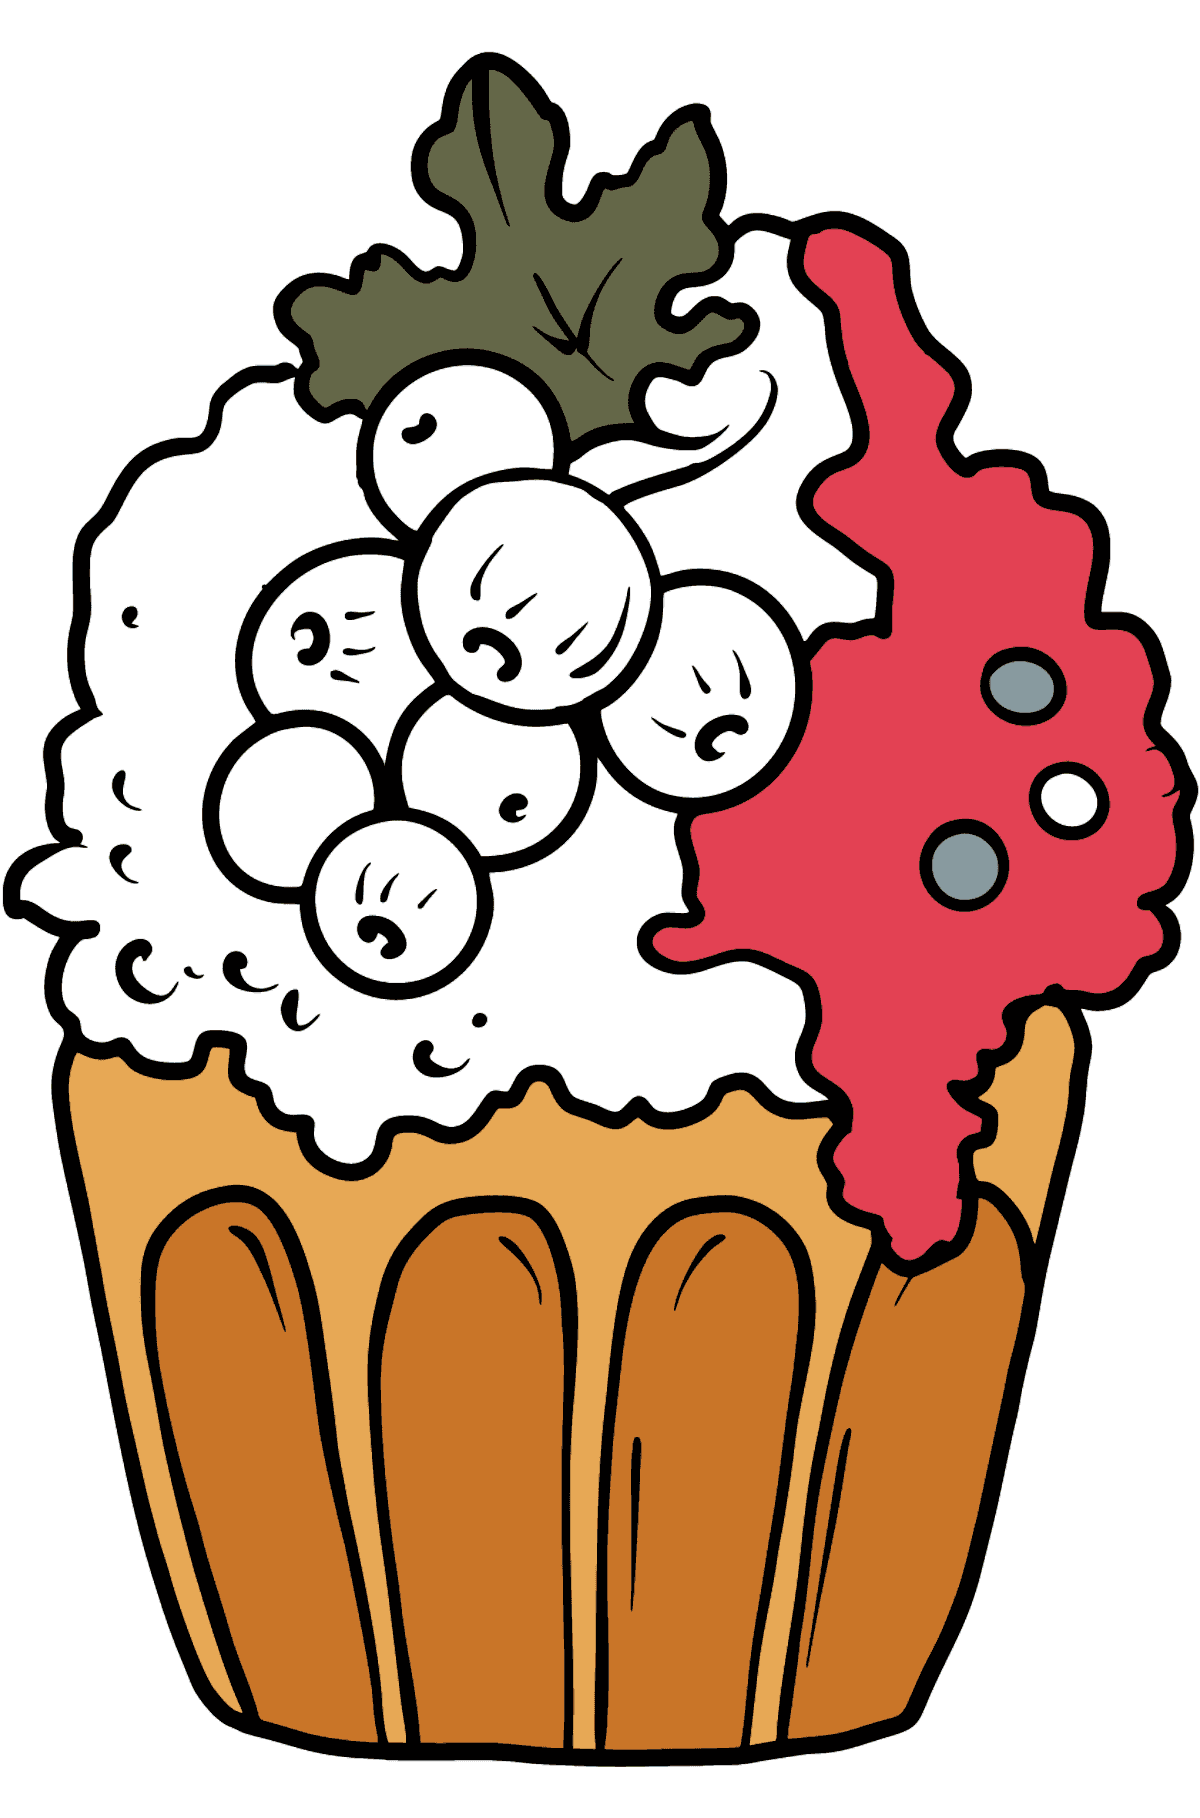 Cupcake with Currants coloring page - Coloring Pages for Kids